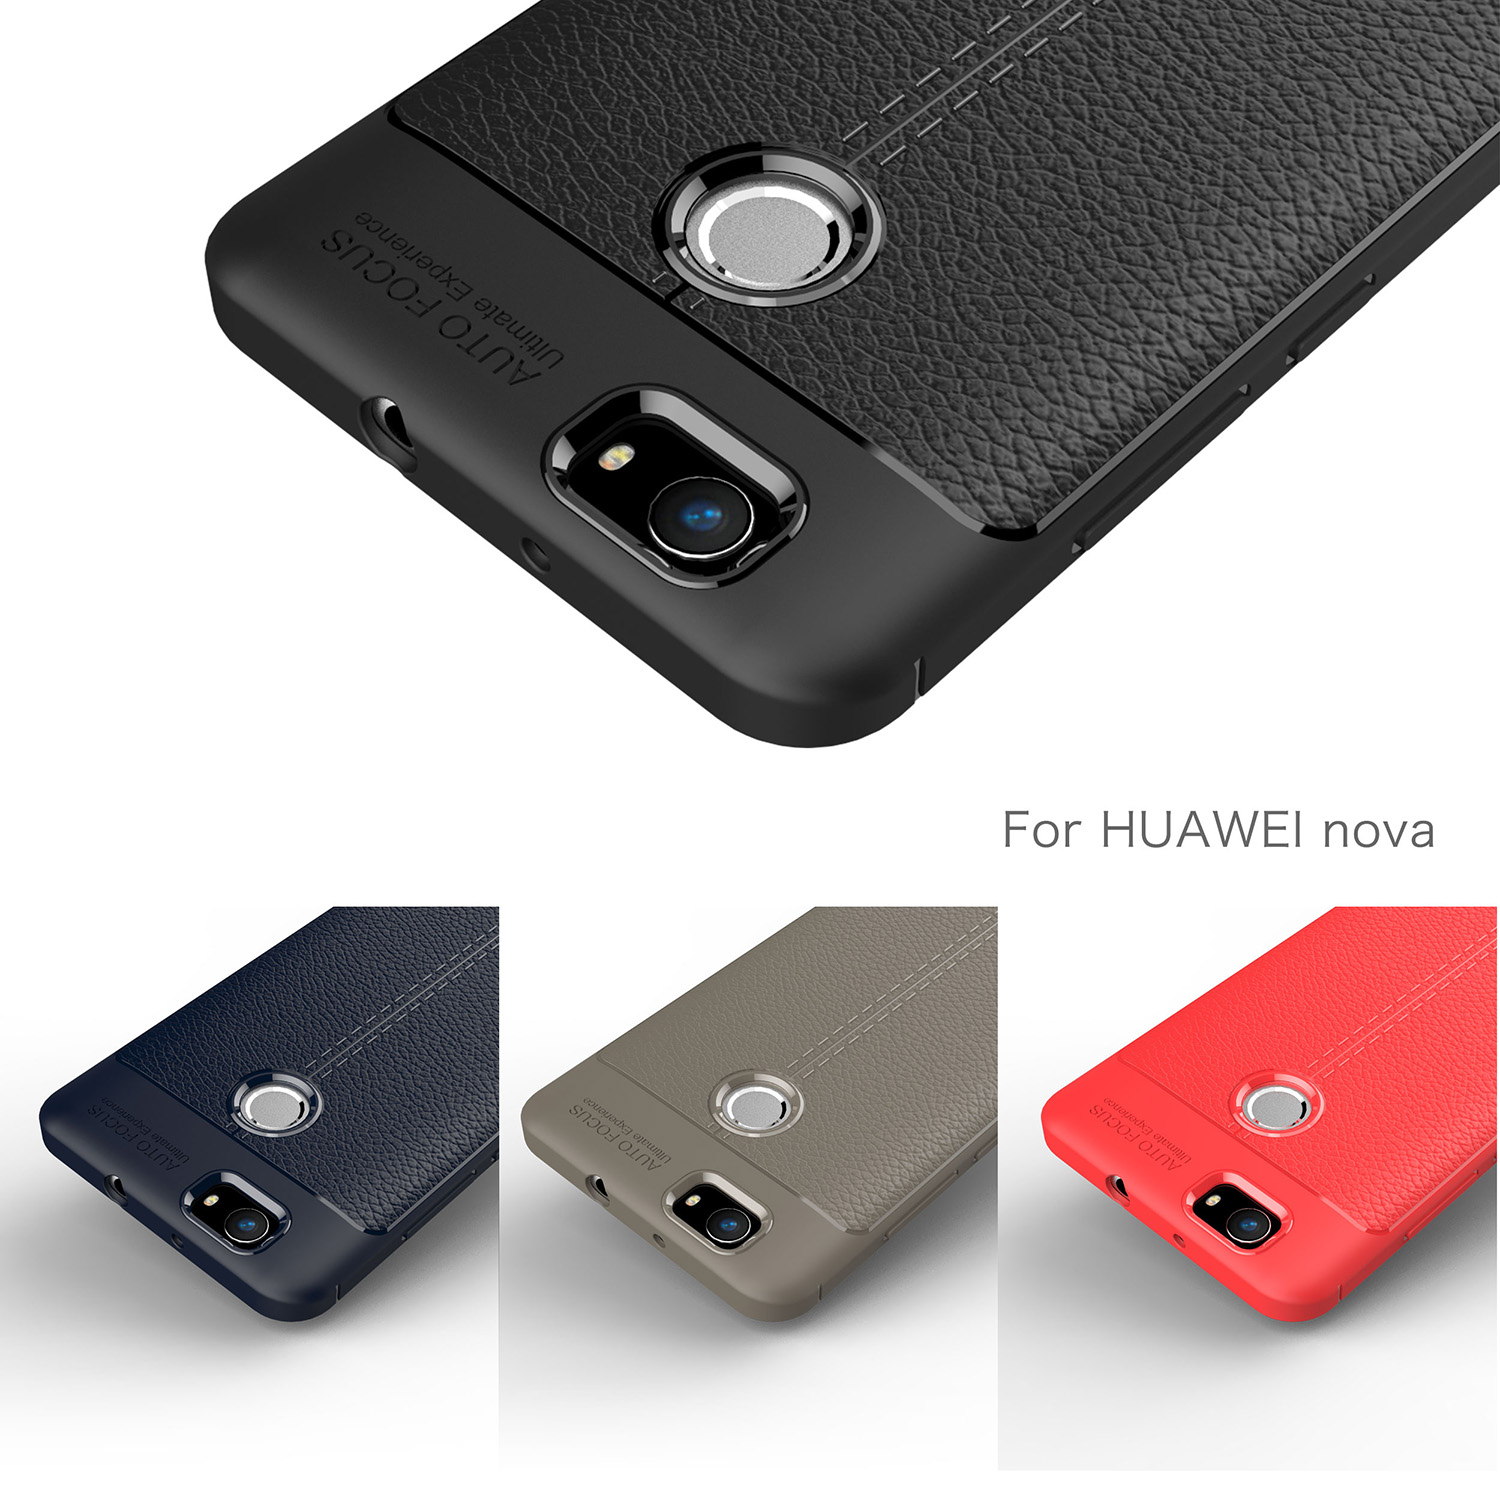 Soft Case for Huawei Nova CAN-L01 CAN-L11 CAN-L12 CAN-L13 Plastic Back